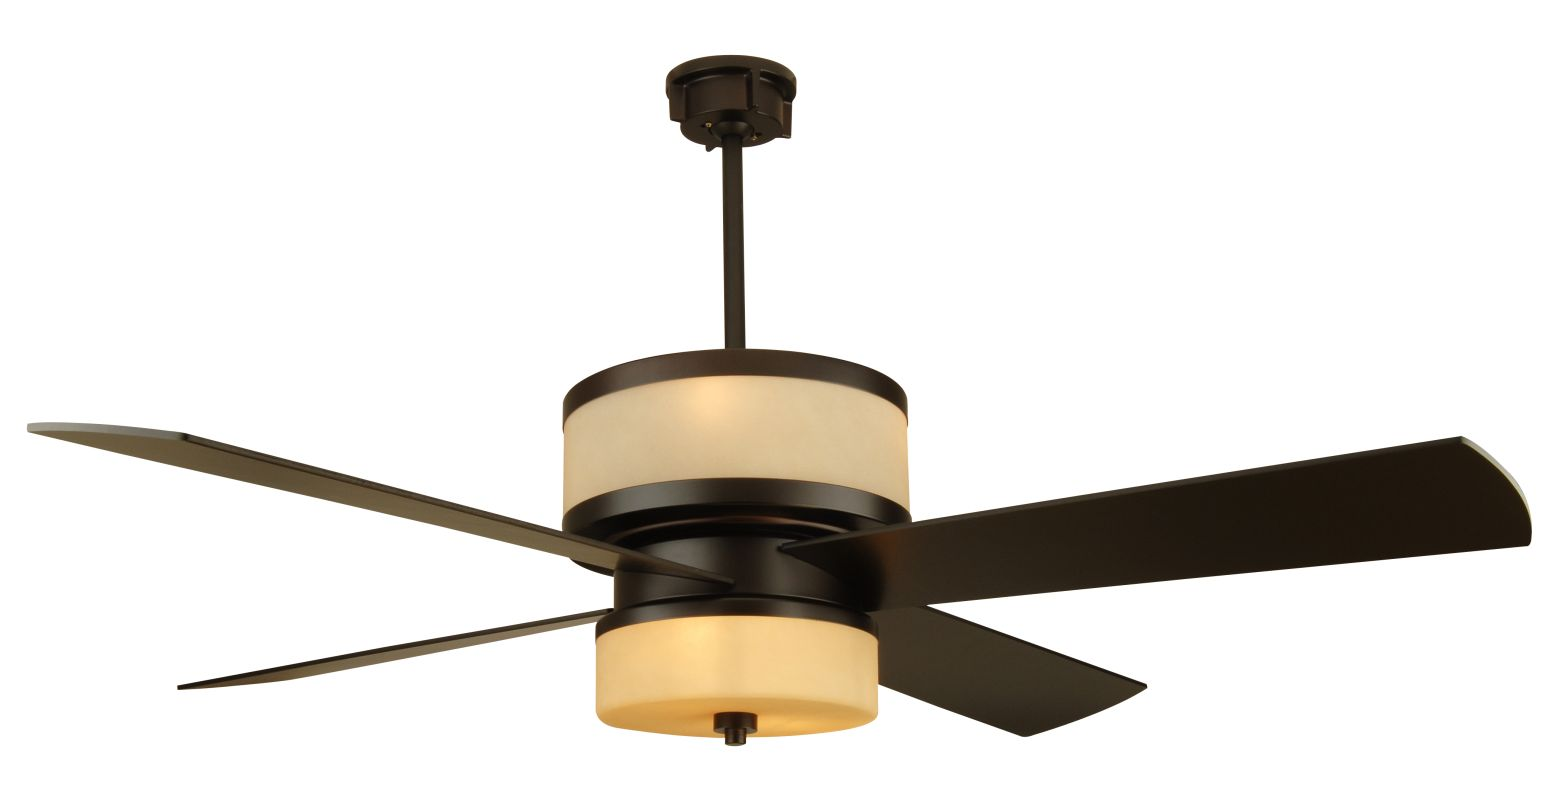 Craftmade Midoro Modern 56&quote 4 Blade Indoor Ceiling Fan - Blades and